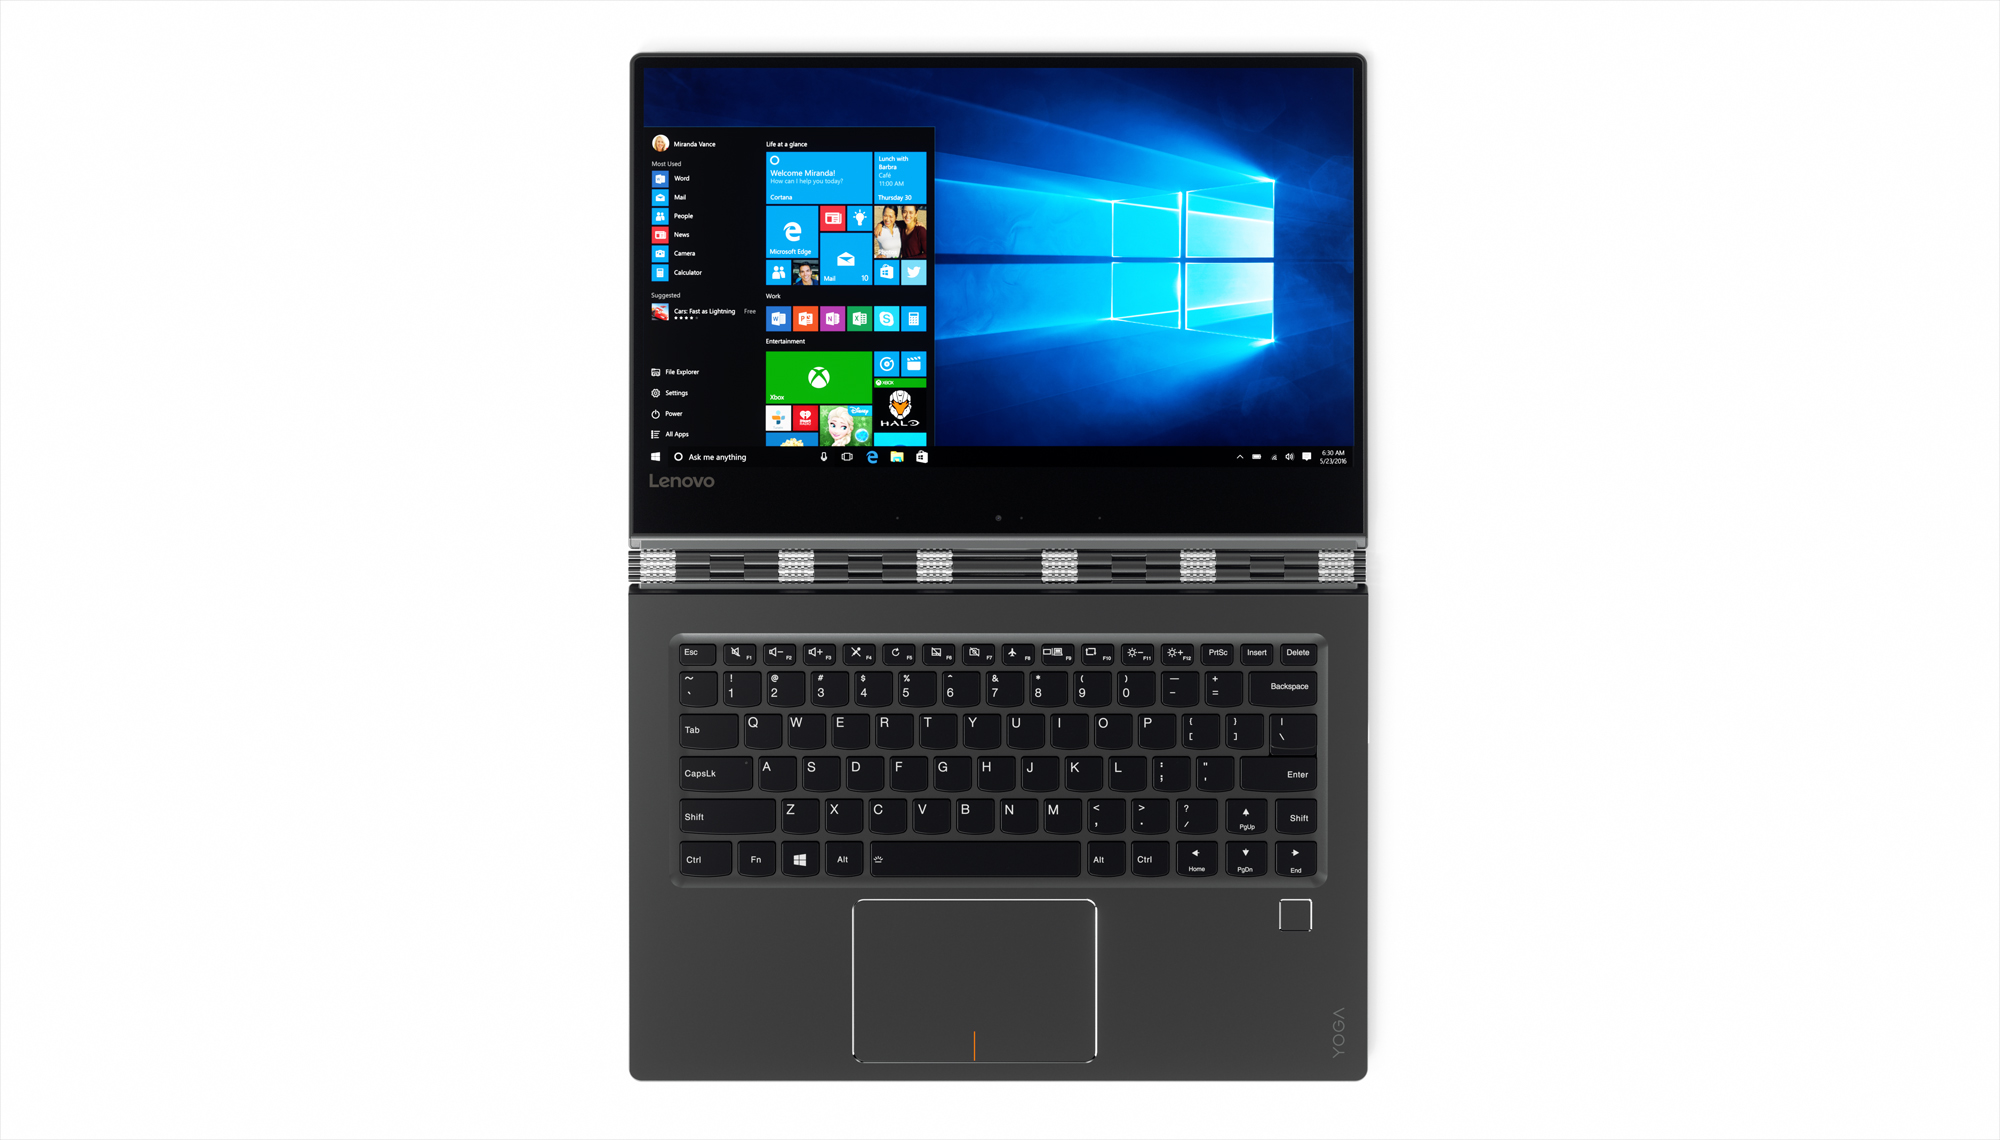 13_YOGA_910_14-Inch_Tour_Shot_Front_Gunmetal_Windows_10_screenfill